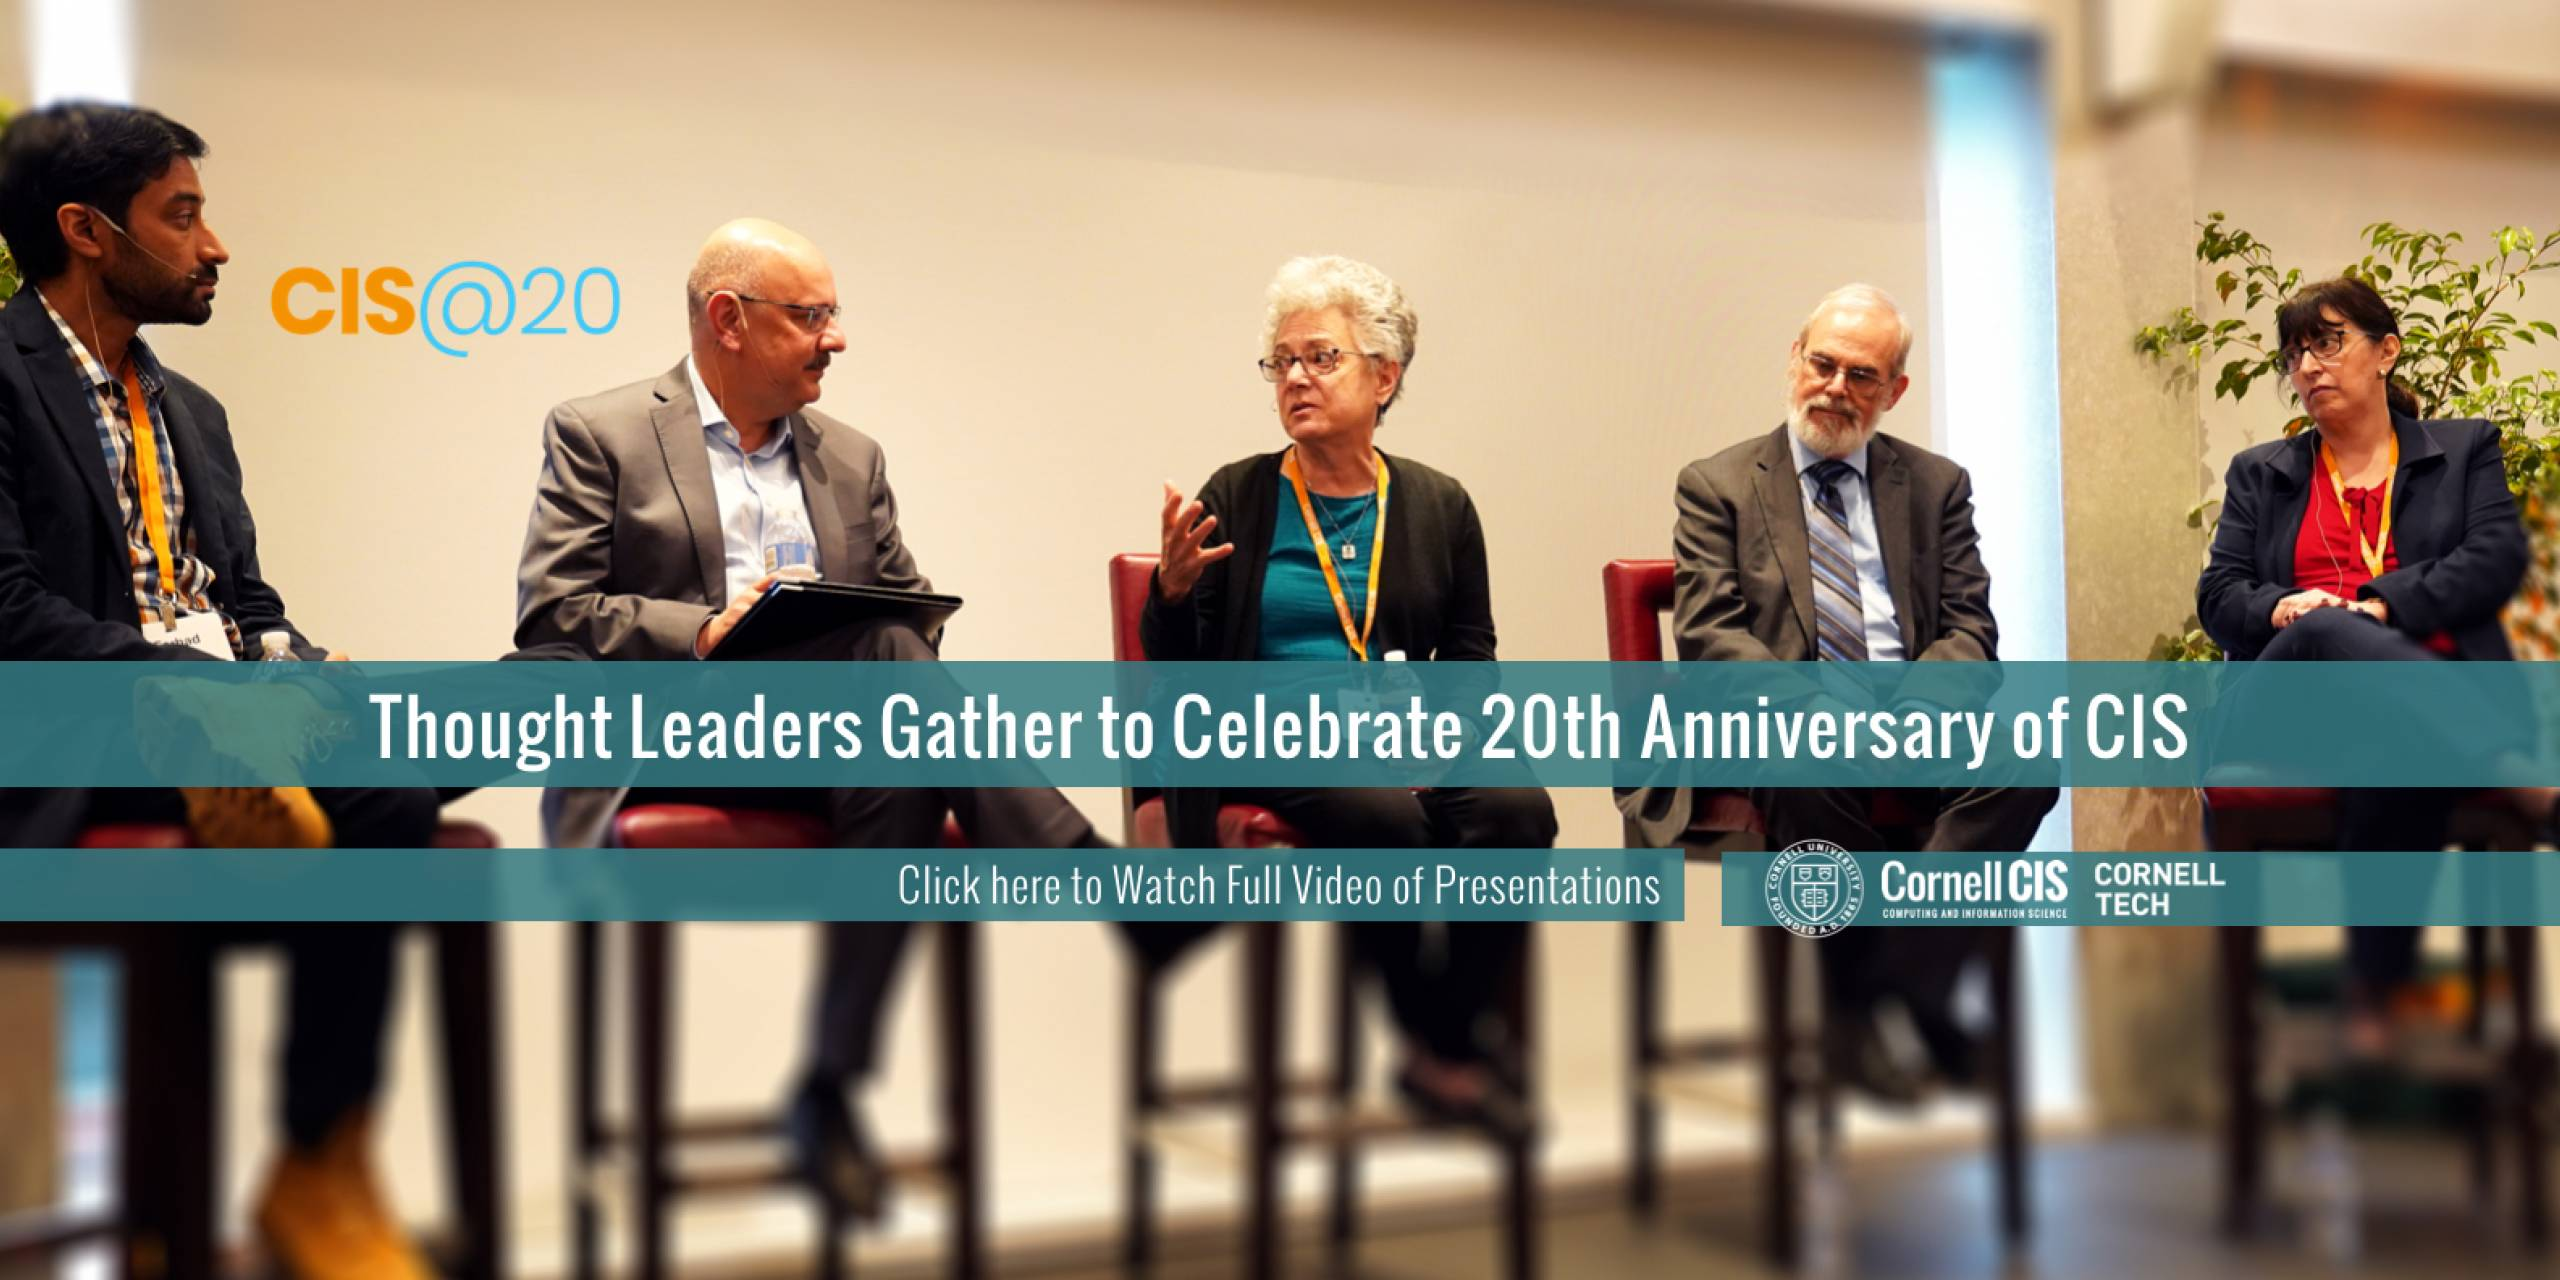 Thought Leaders Gather to Celebrate 20th Anniversary of CIS